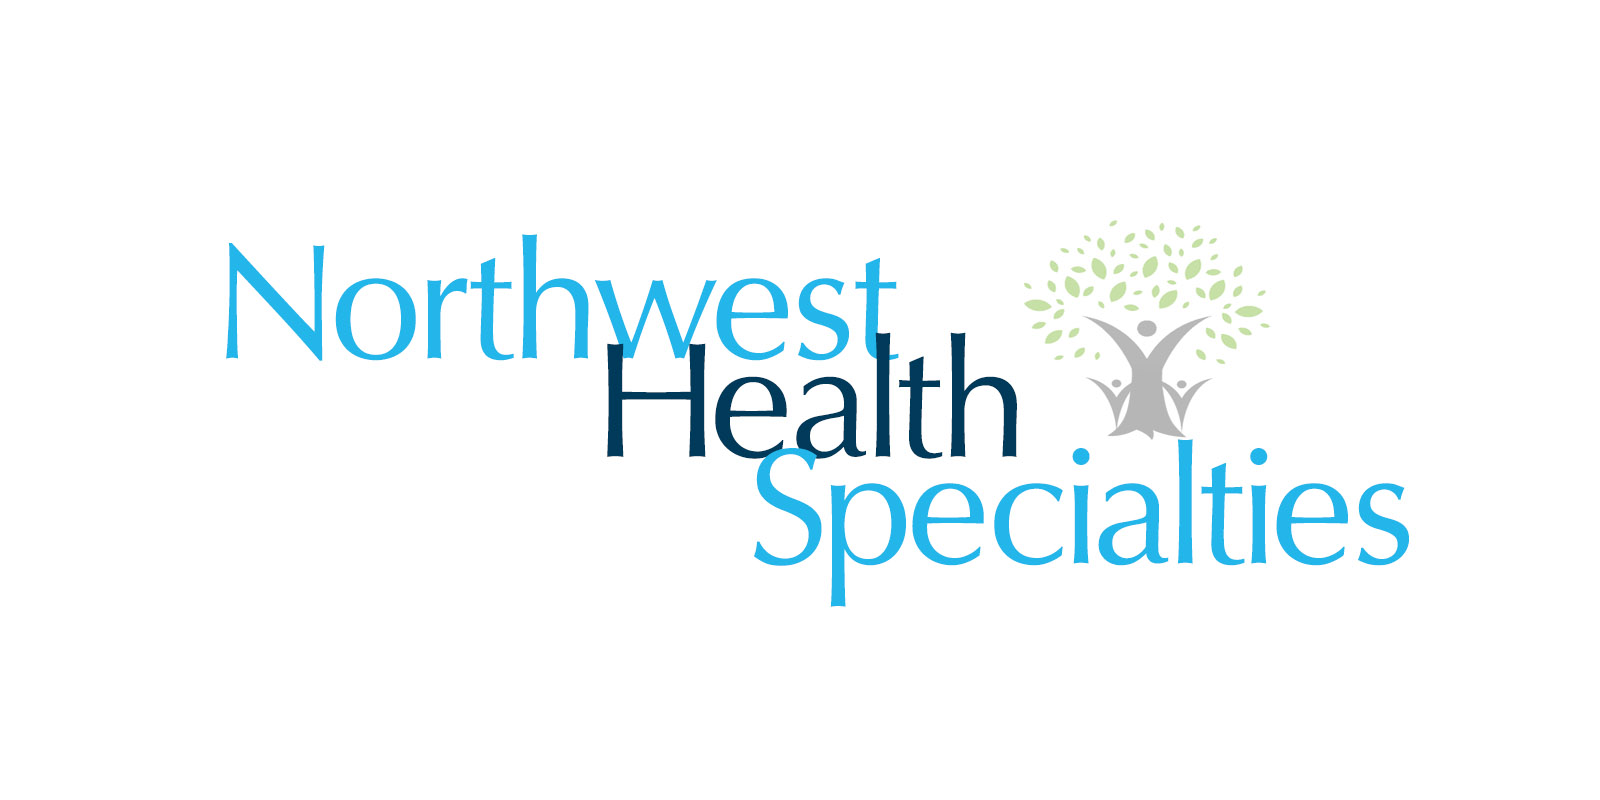 Northwest Health Specialties